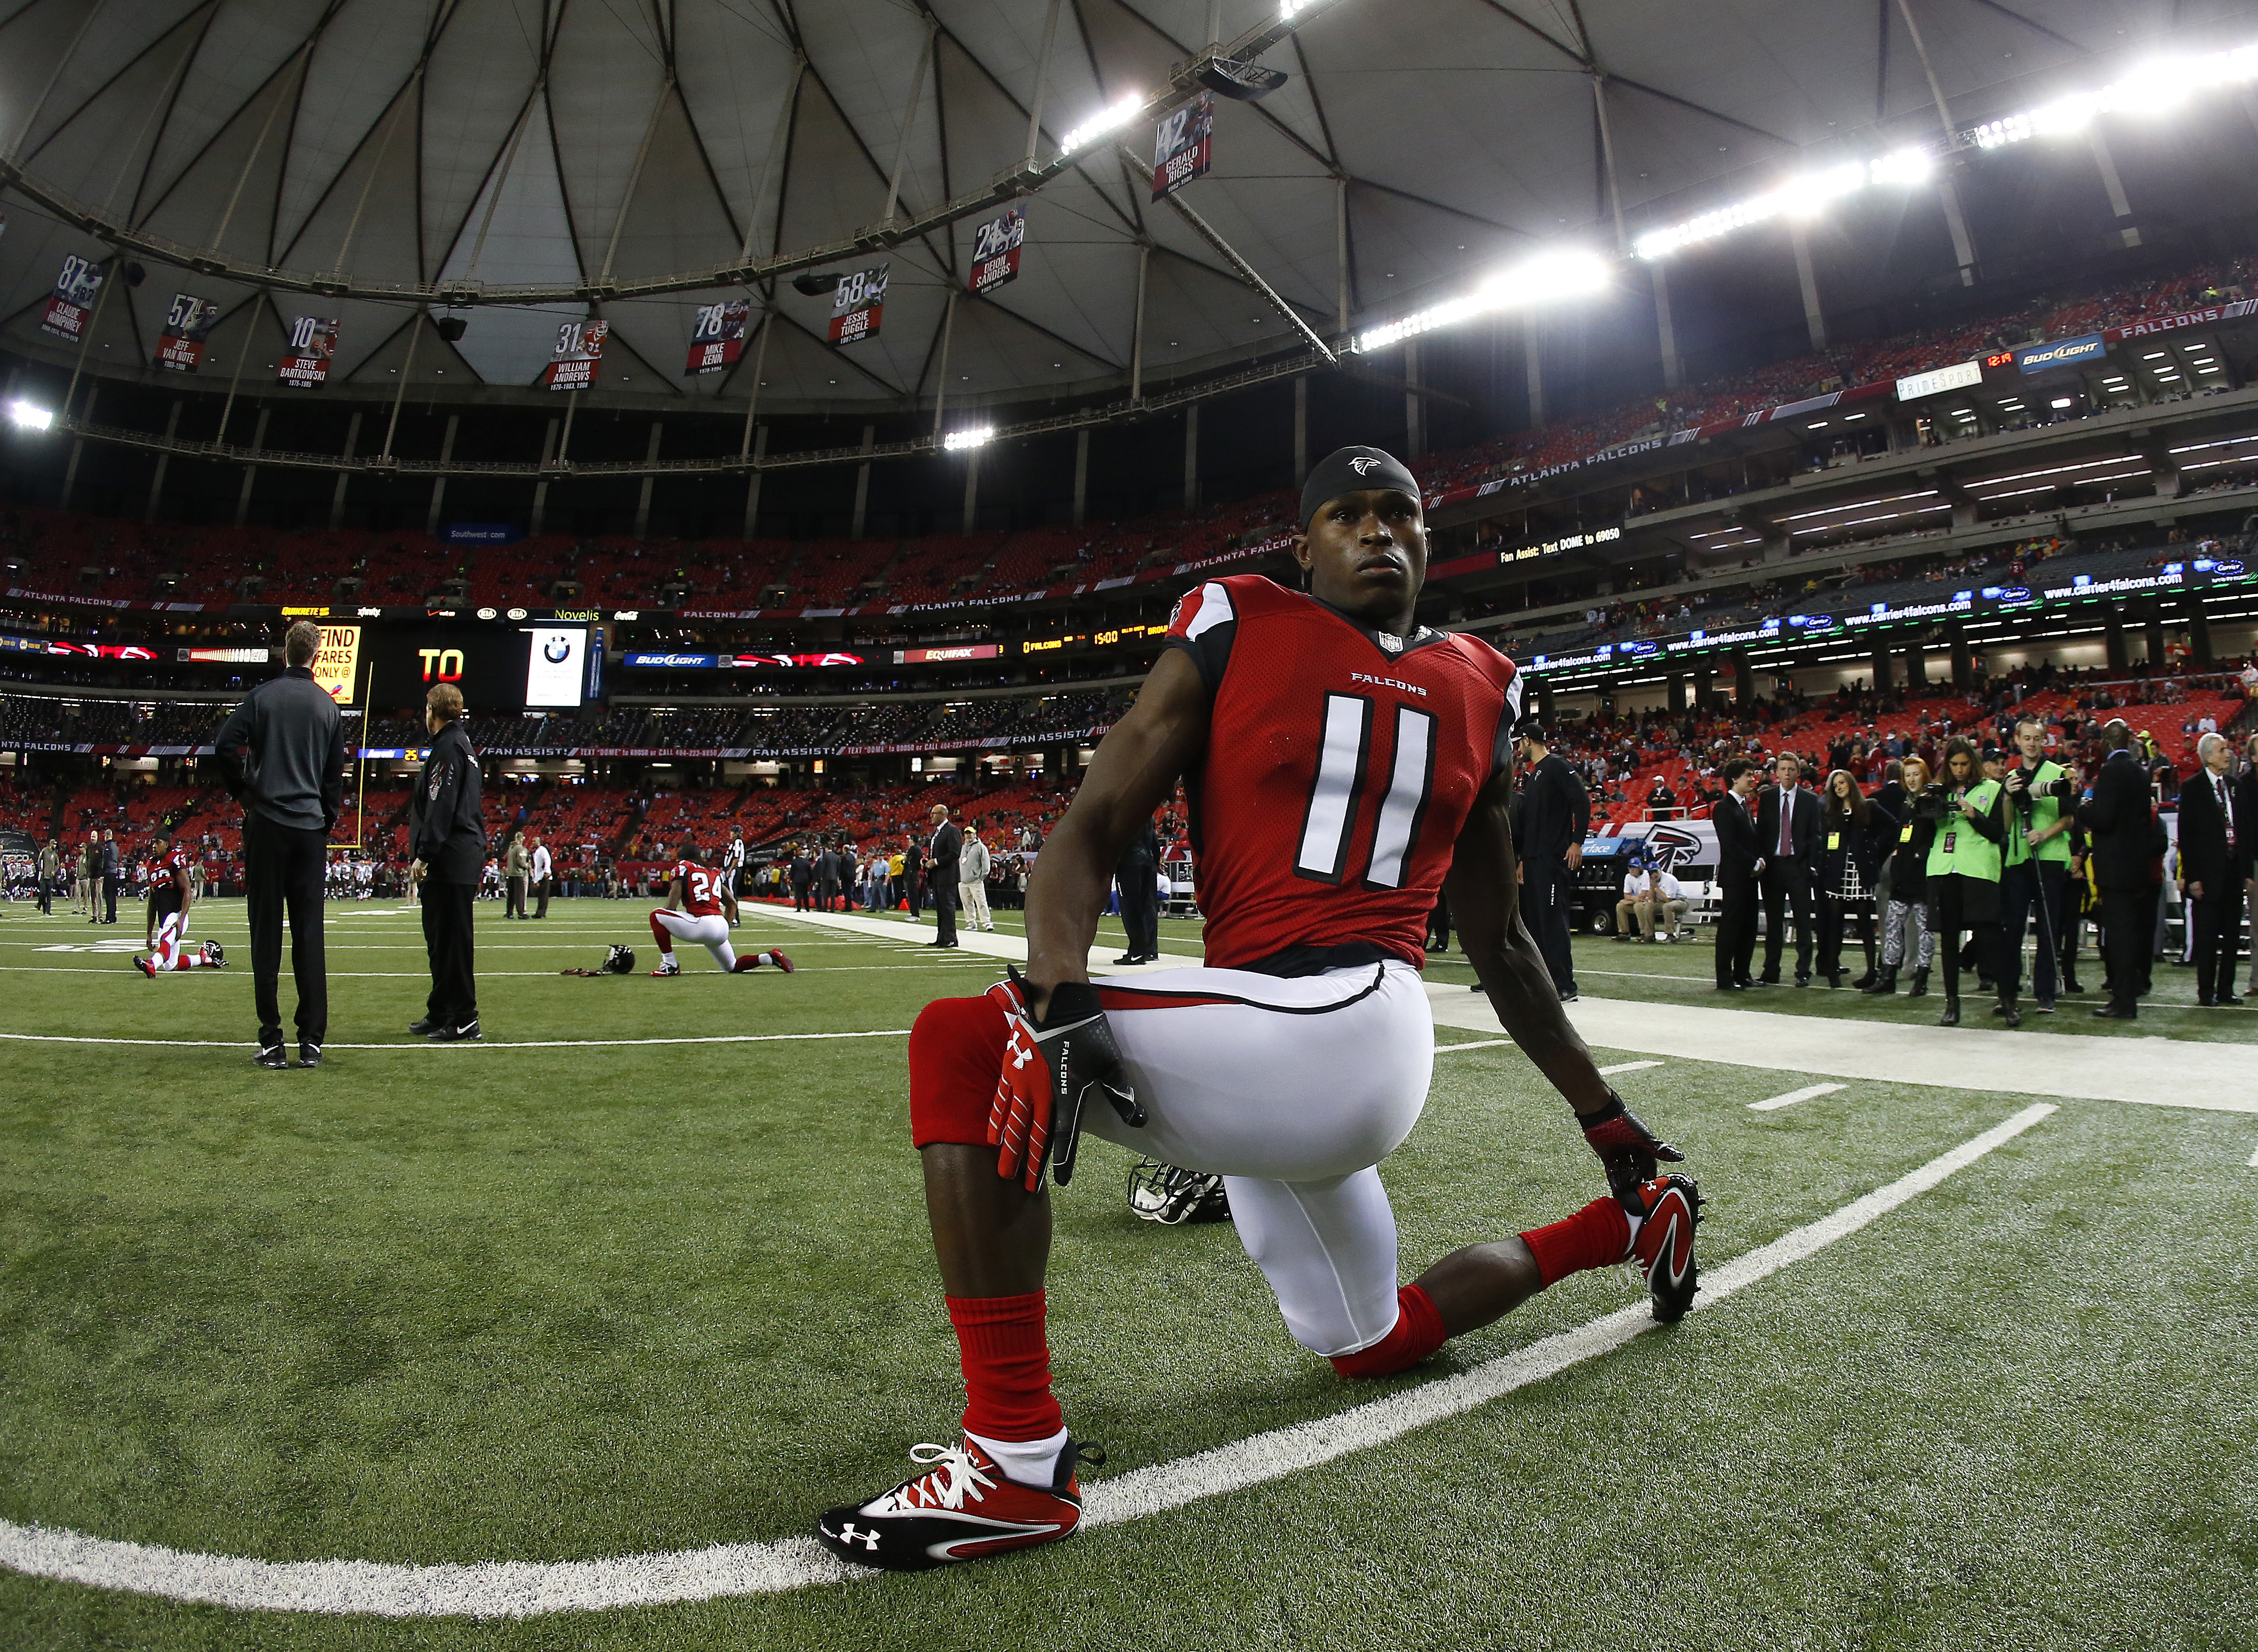 FILE - In this Nov. 23, 2014, file photo, Atlanta Falcons wide receiver Julio Jones (11) warms up before an NFL football game against the Cleveland Browns in Atlanta. Jones isn't sure how the Philadelphia Eagles will try to defend him in the season opener